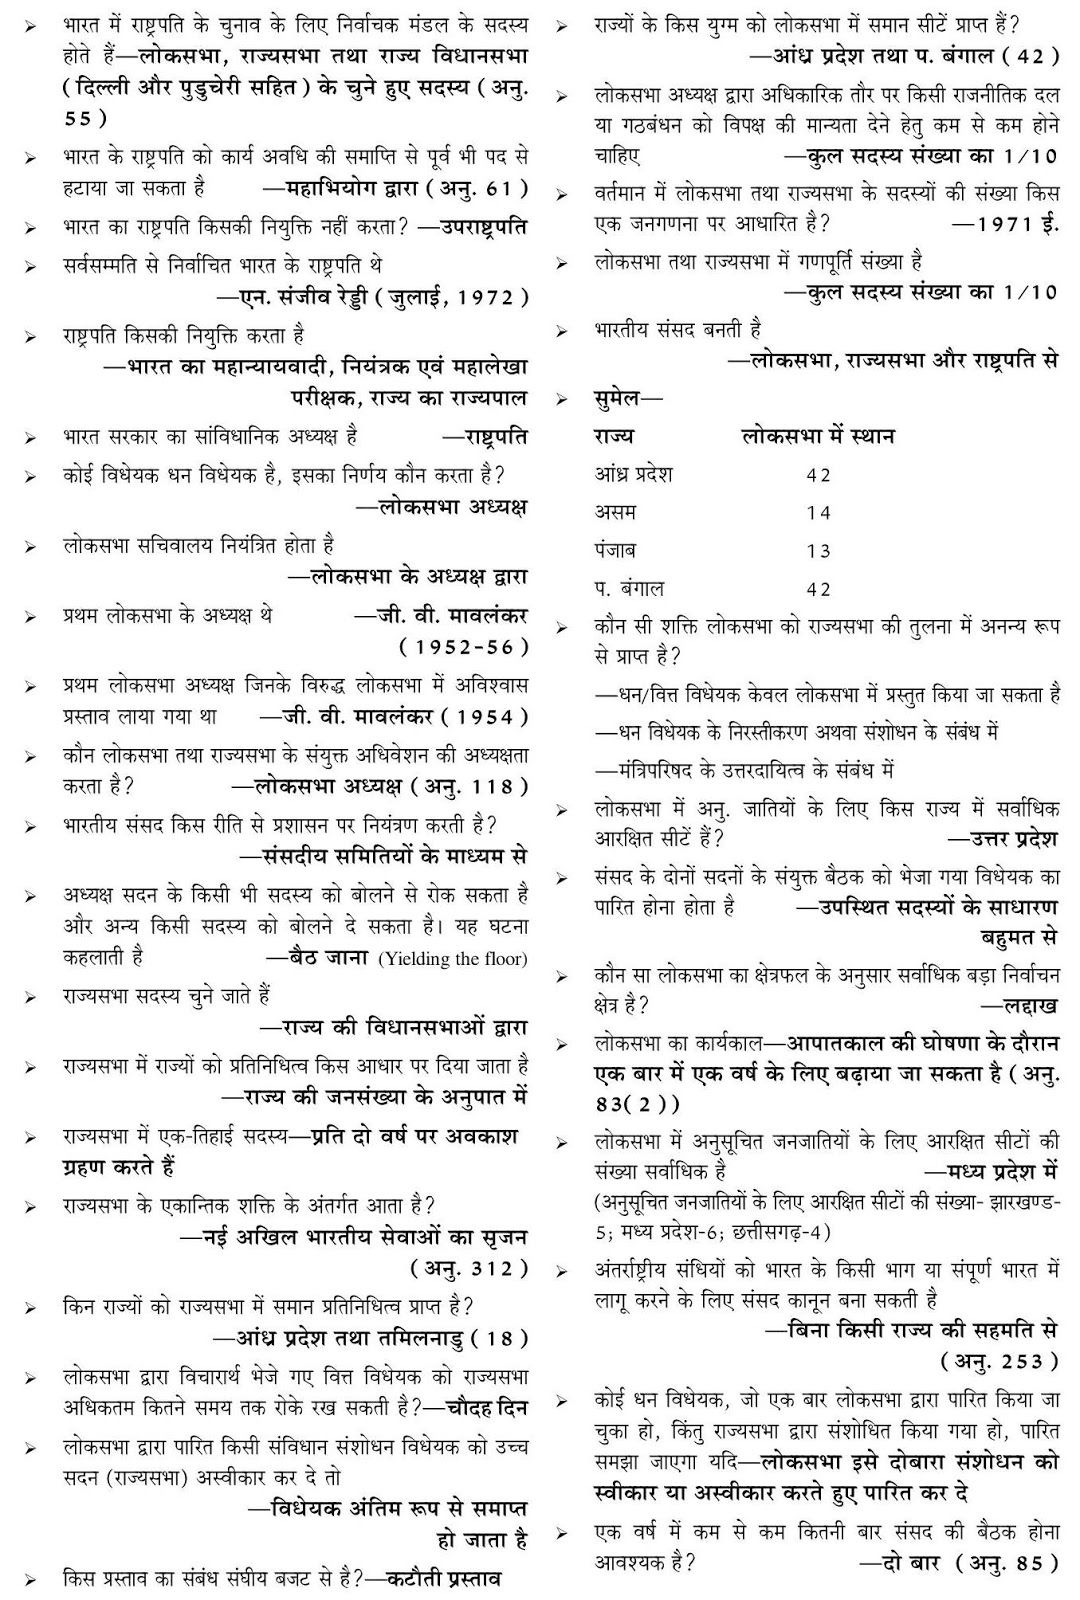 Indian Constitution General Knowledge Questions And Answers In 2020 Indian Constitution General Knowledge General Knowledge Facts